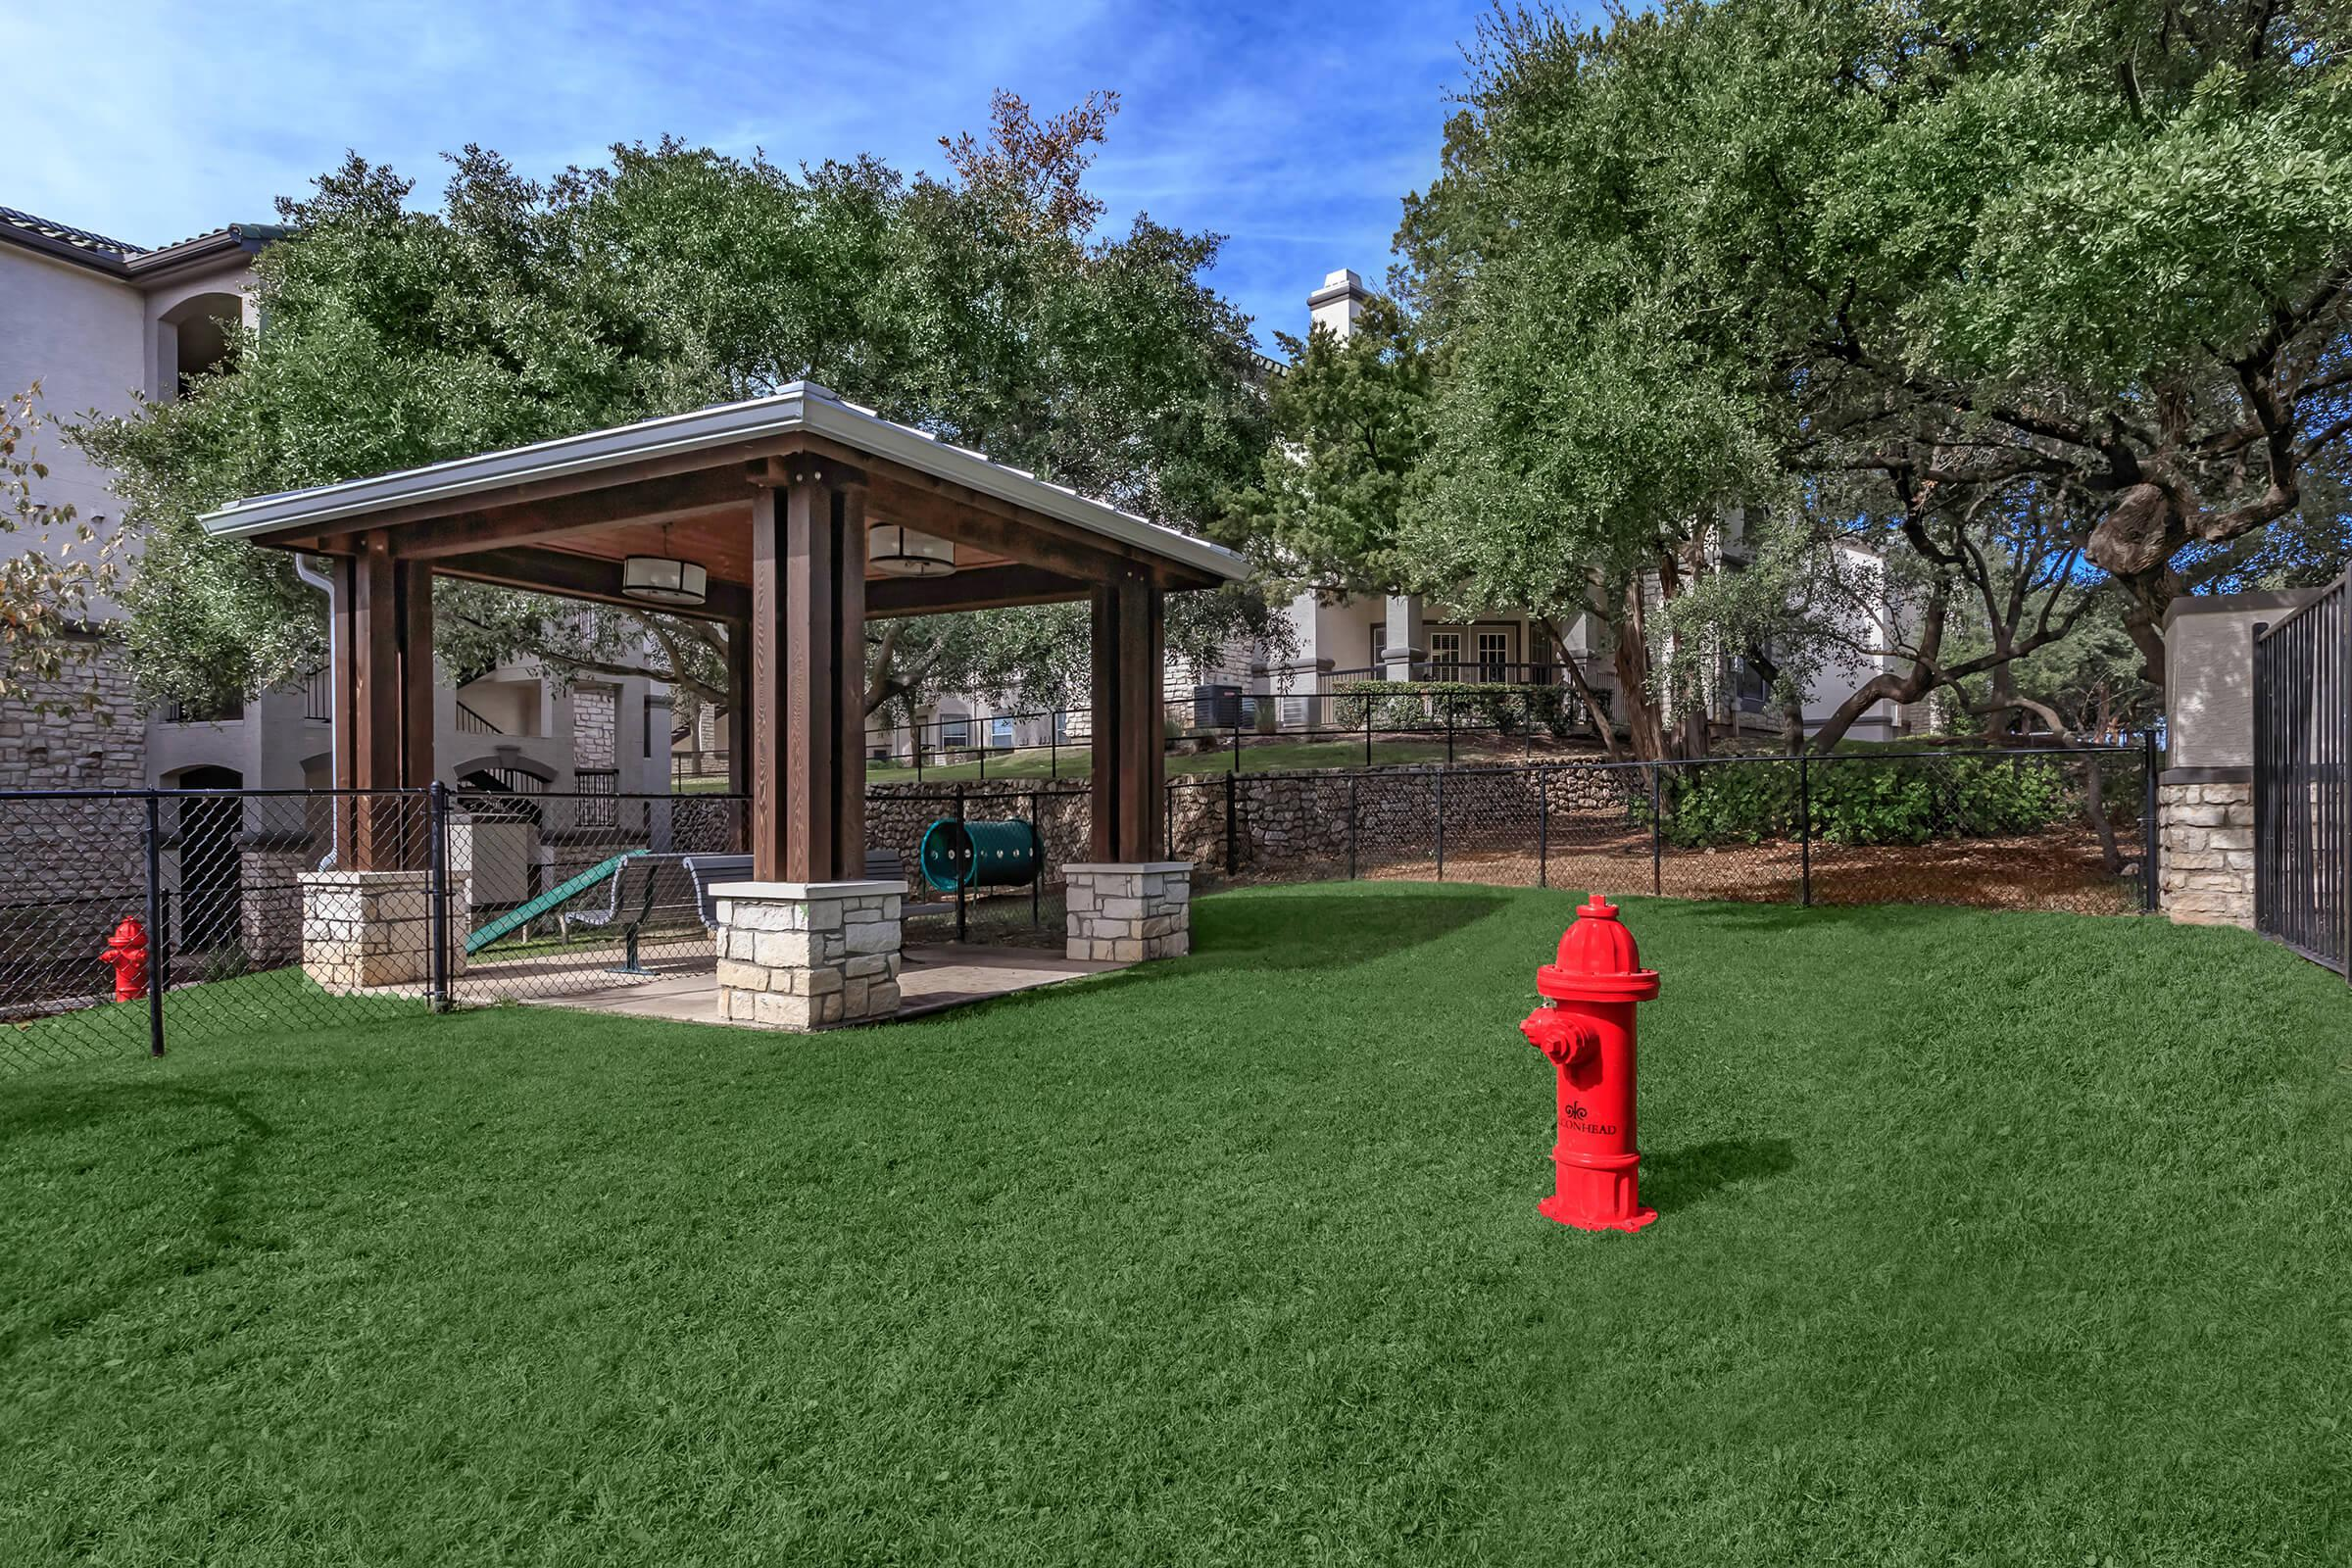 a red fire hydrant in front of a house